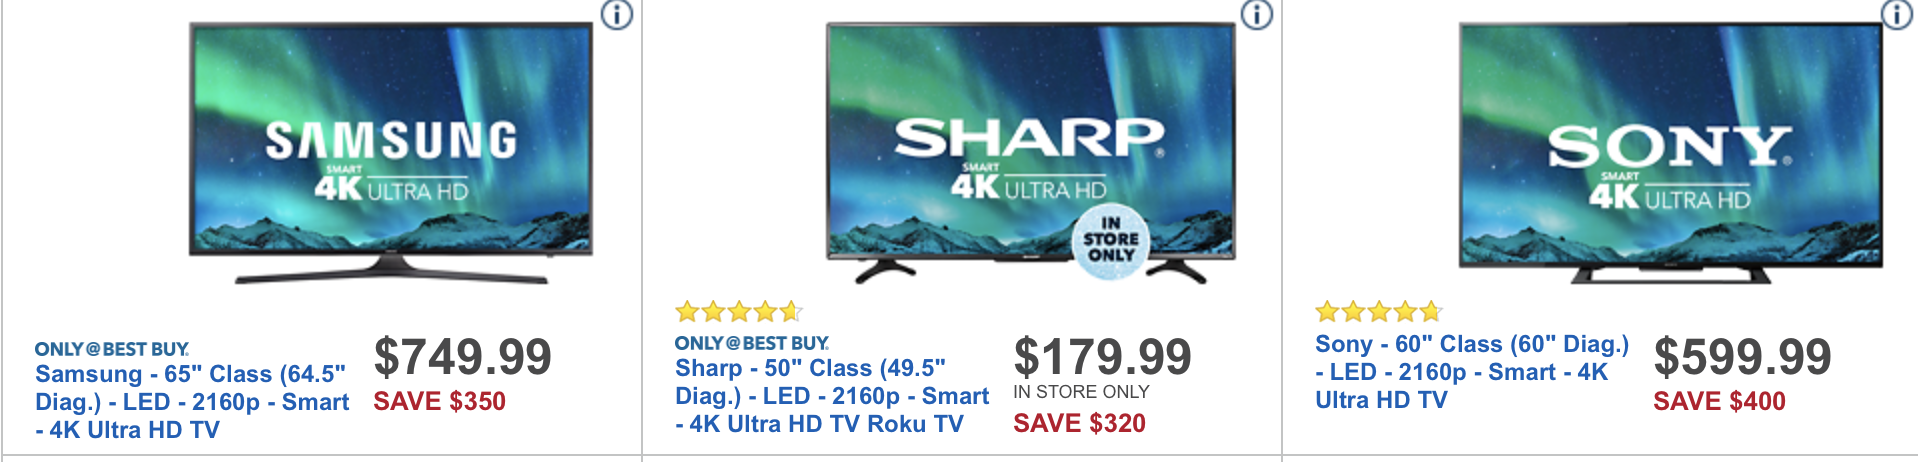 Black Friday 2017 TV Deals Walmart Best Buy Target Amazon More